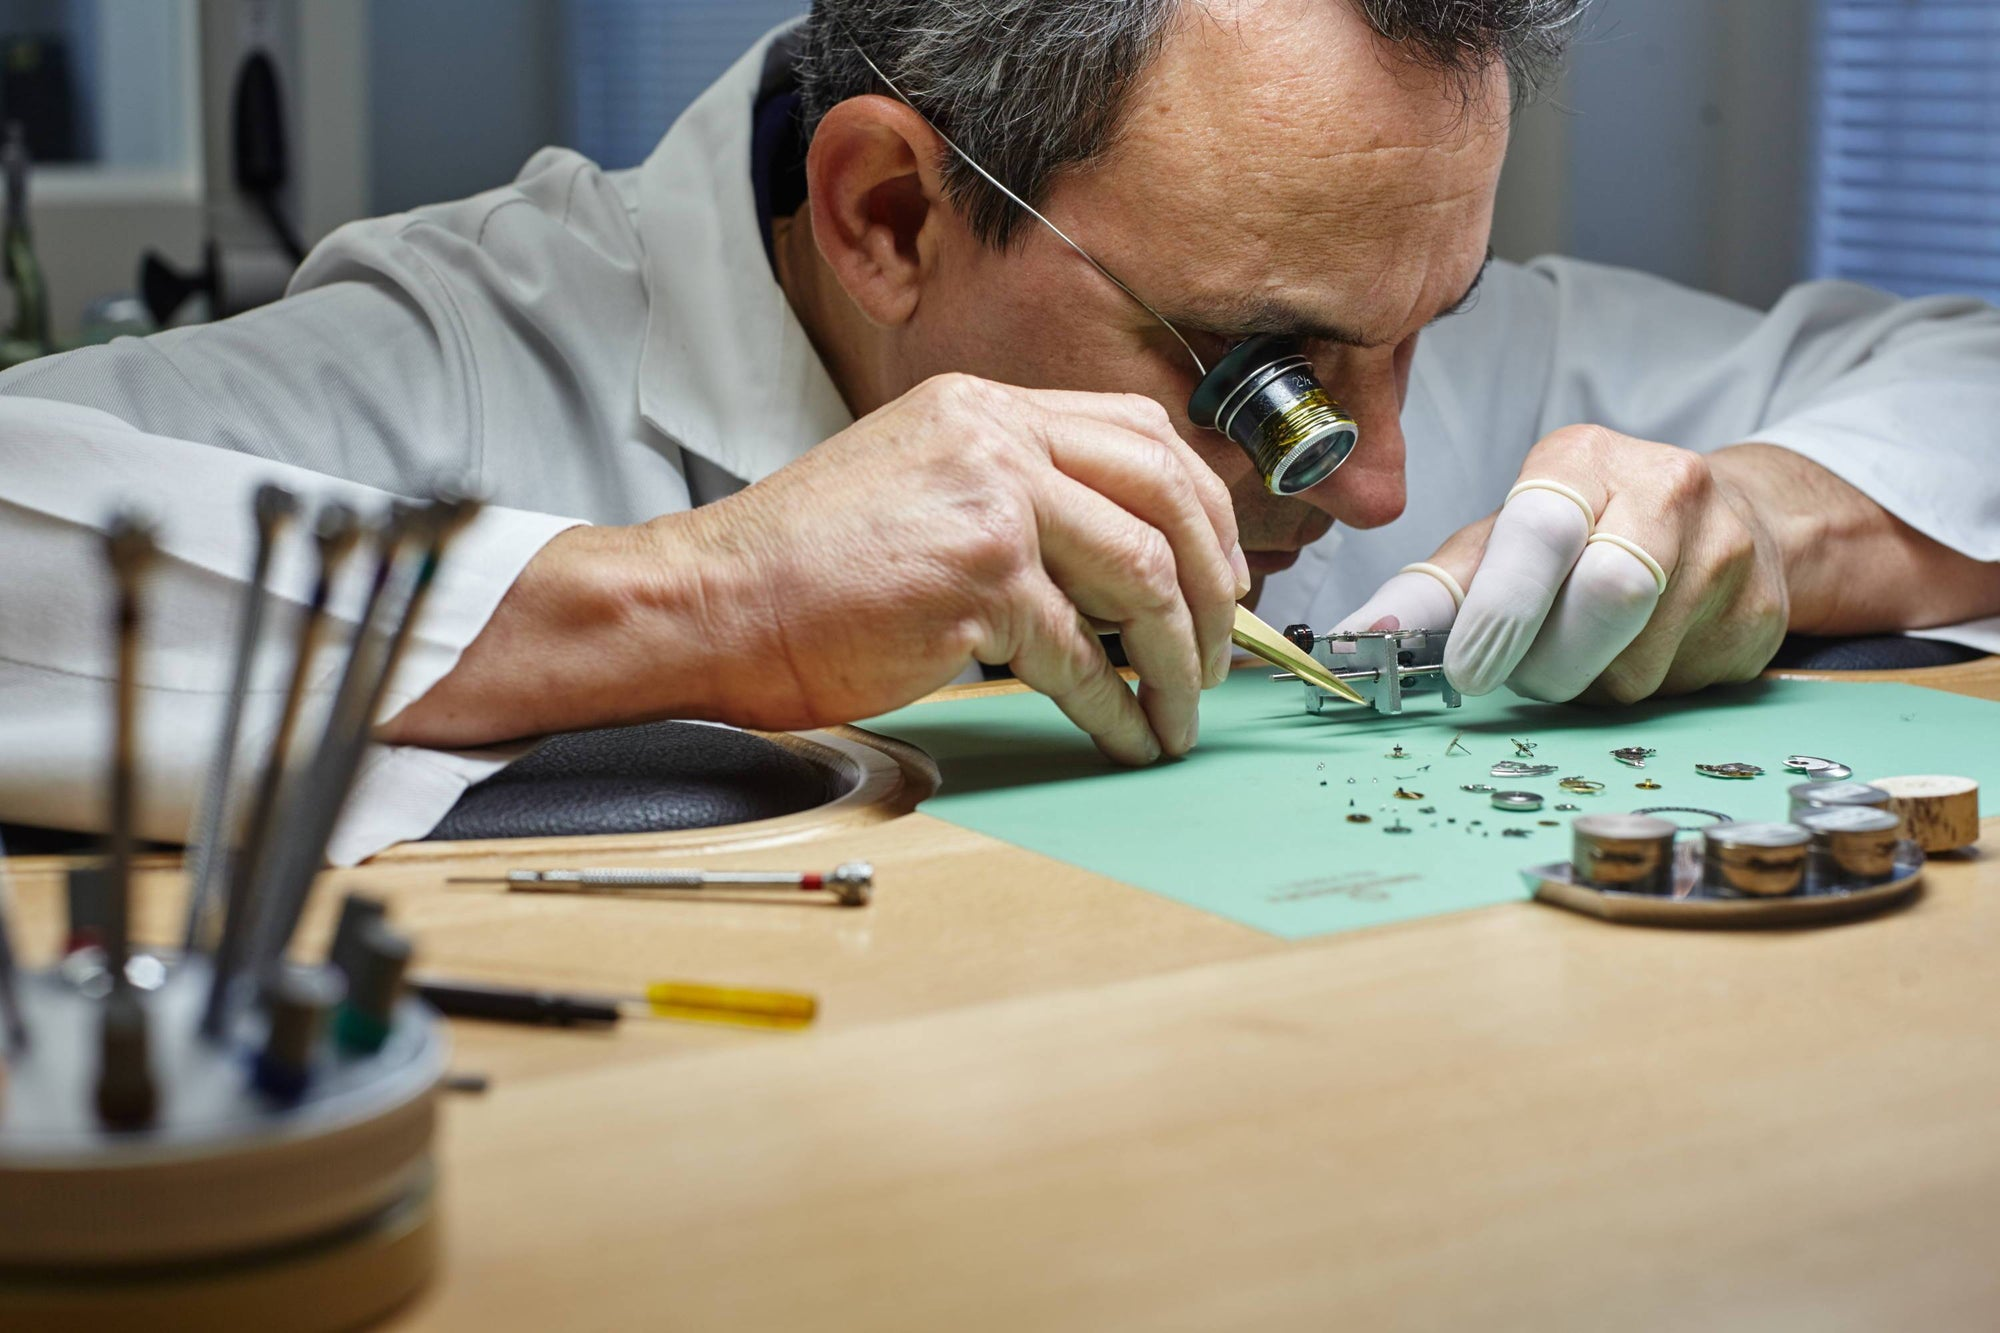 The Complete History of the Swiss Watchmaking Industry